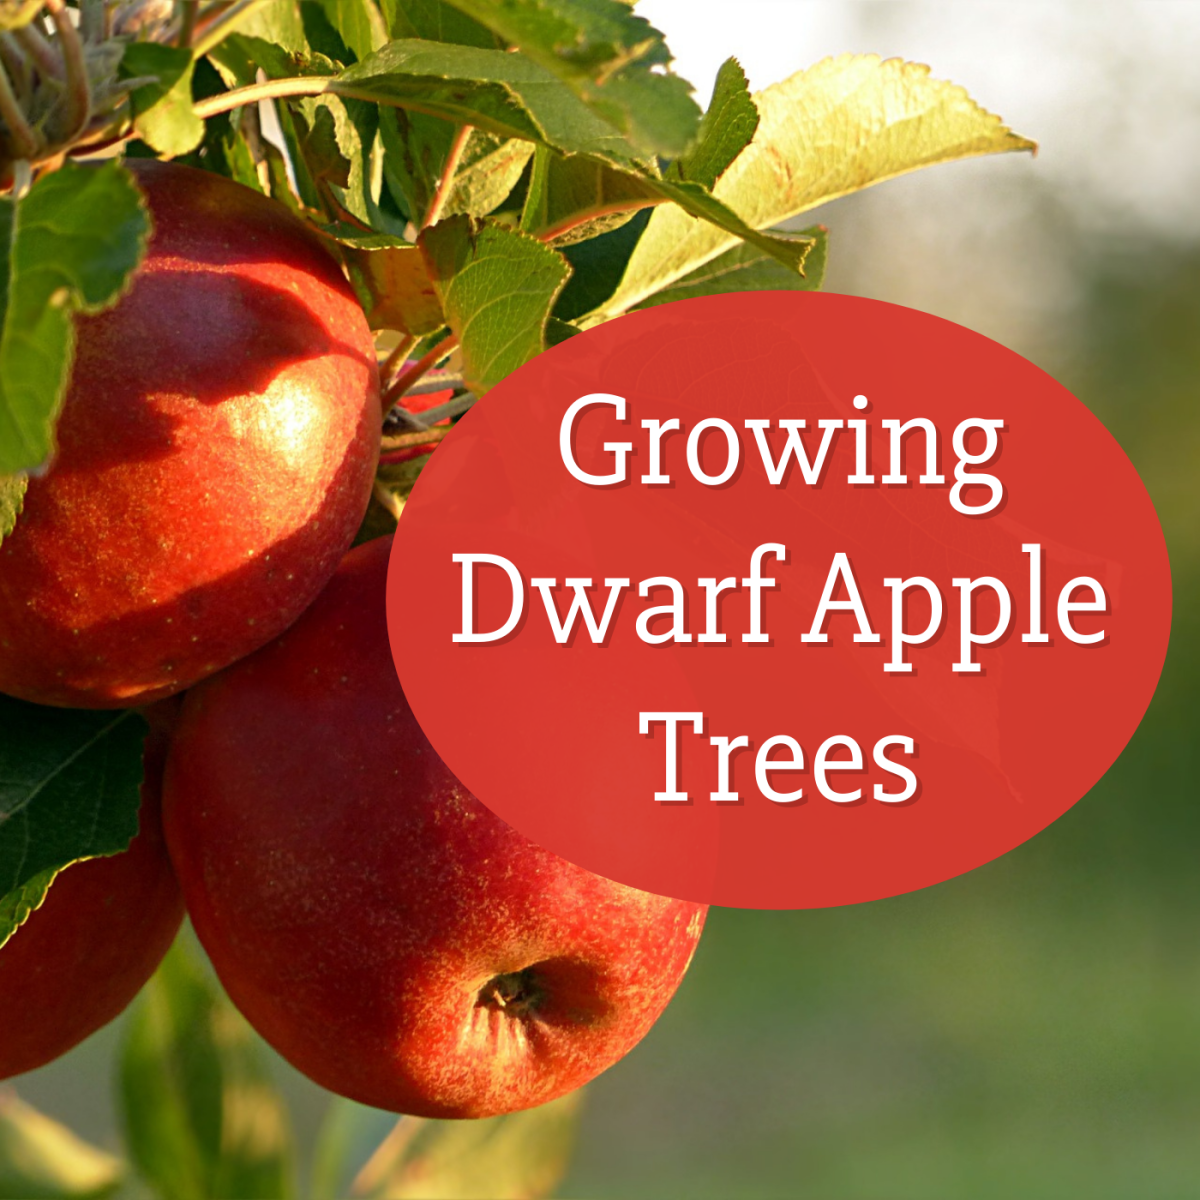 Are you considering a dwarf apple tree for your yard? Get advice on planting, pruning, dealing with pests, harvesting, and more.